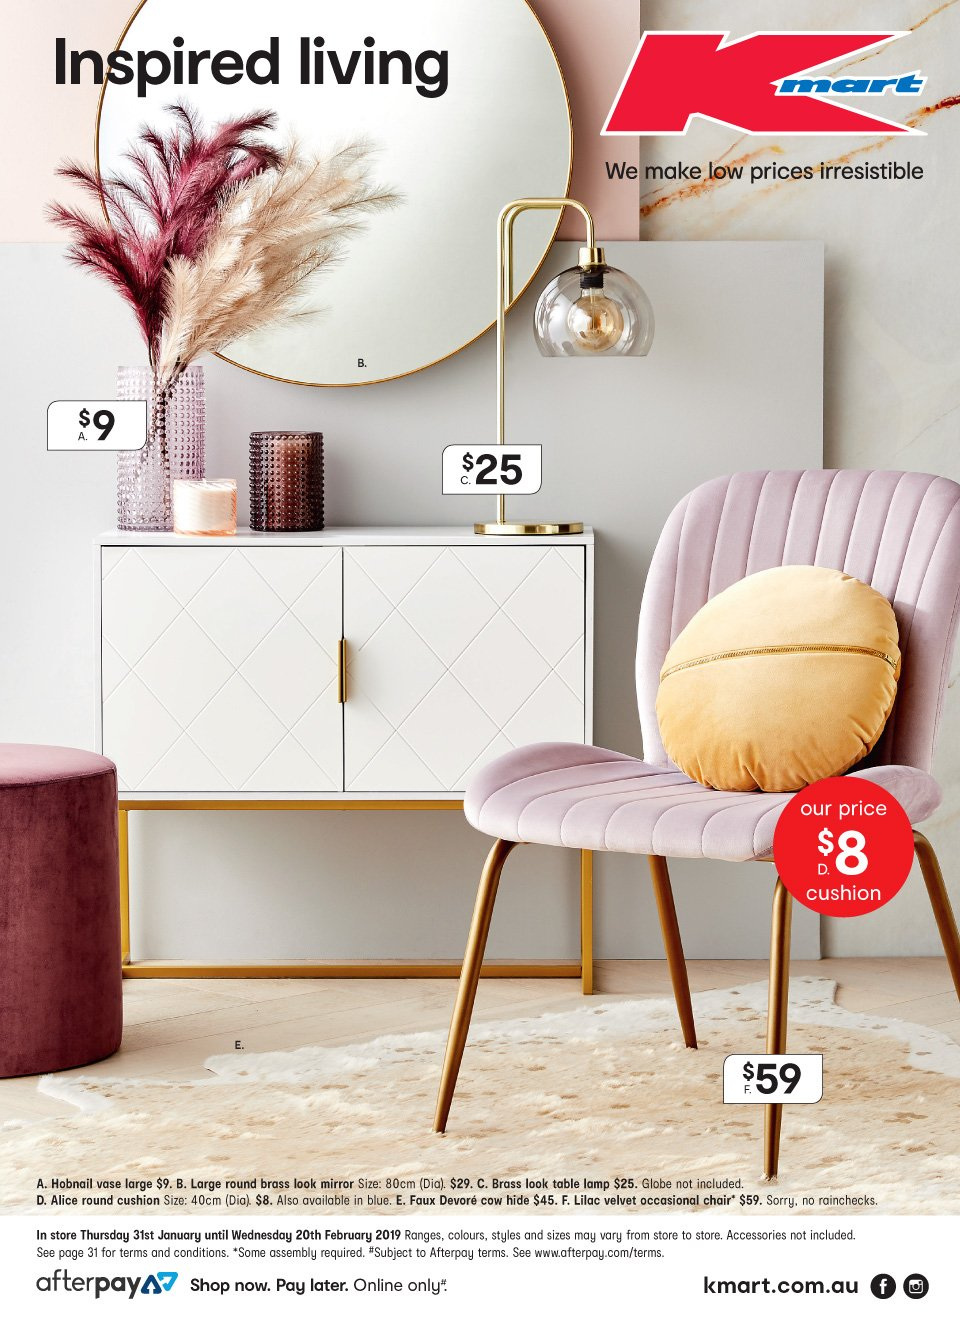 Kmart Catalogue - 31.1.2019 - 20.2.2019 - Sales products - accessories, cushion, lamp, mirror, table, chair. Page 1.